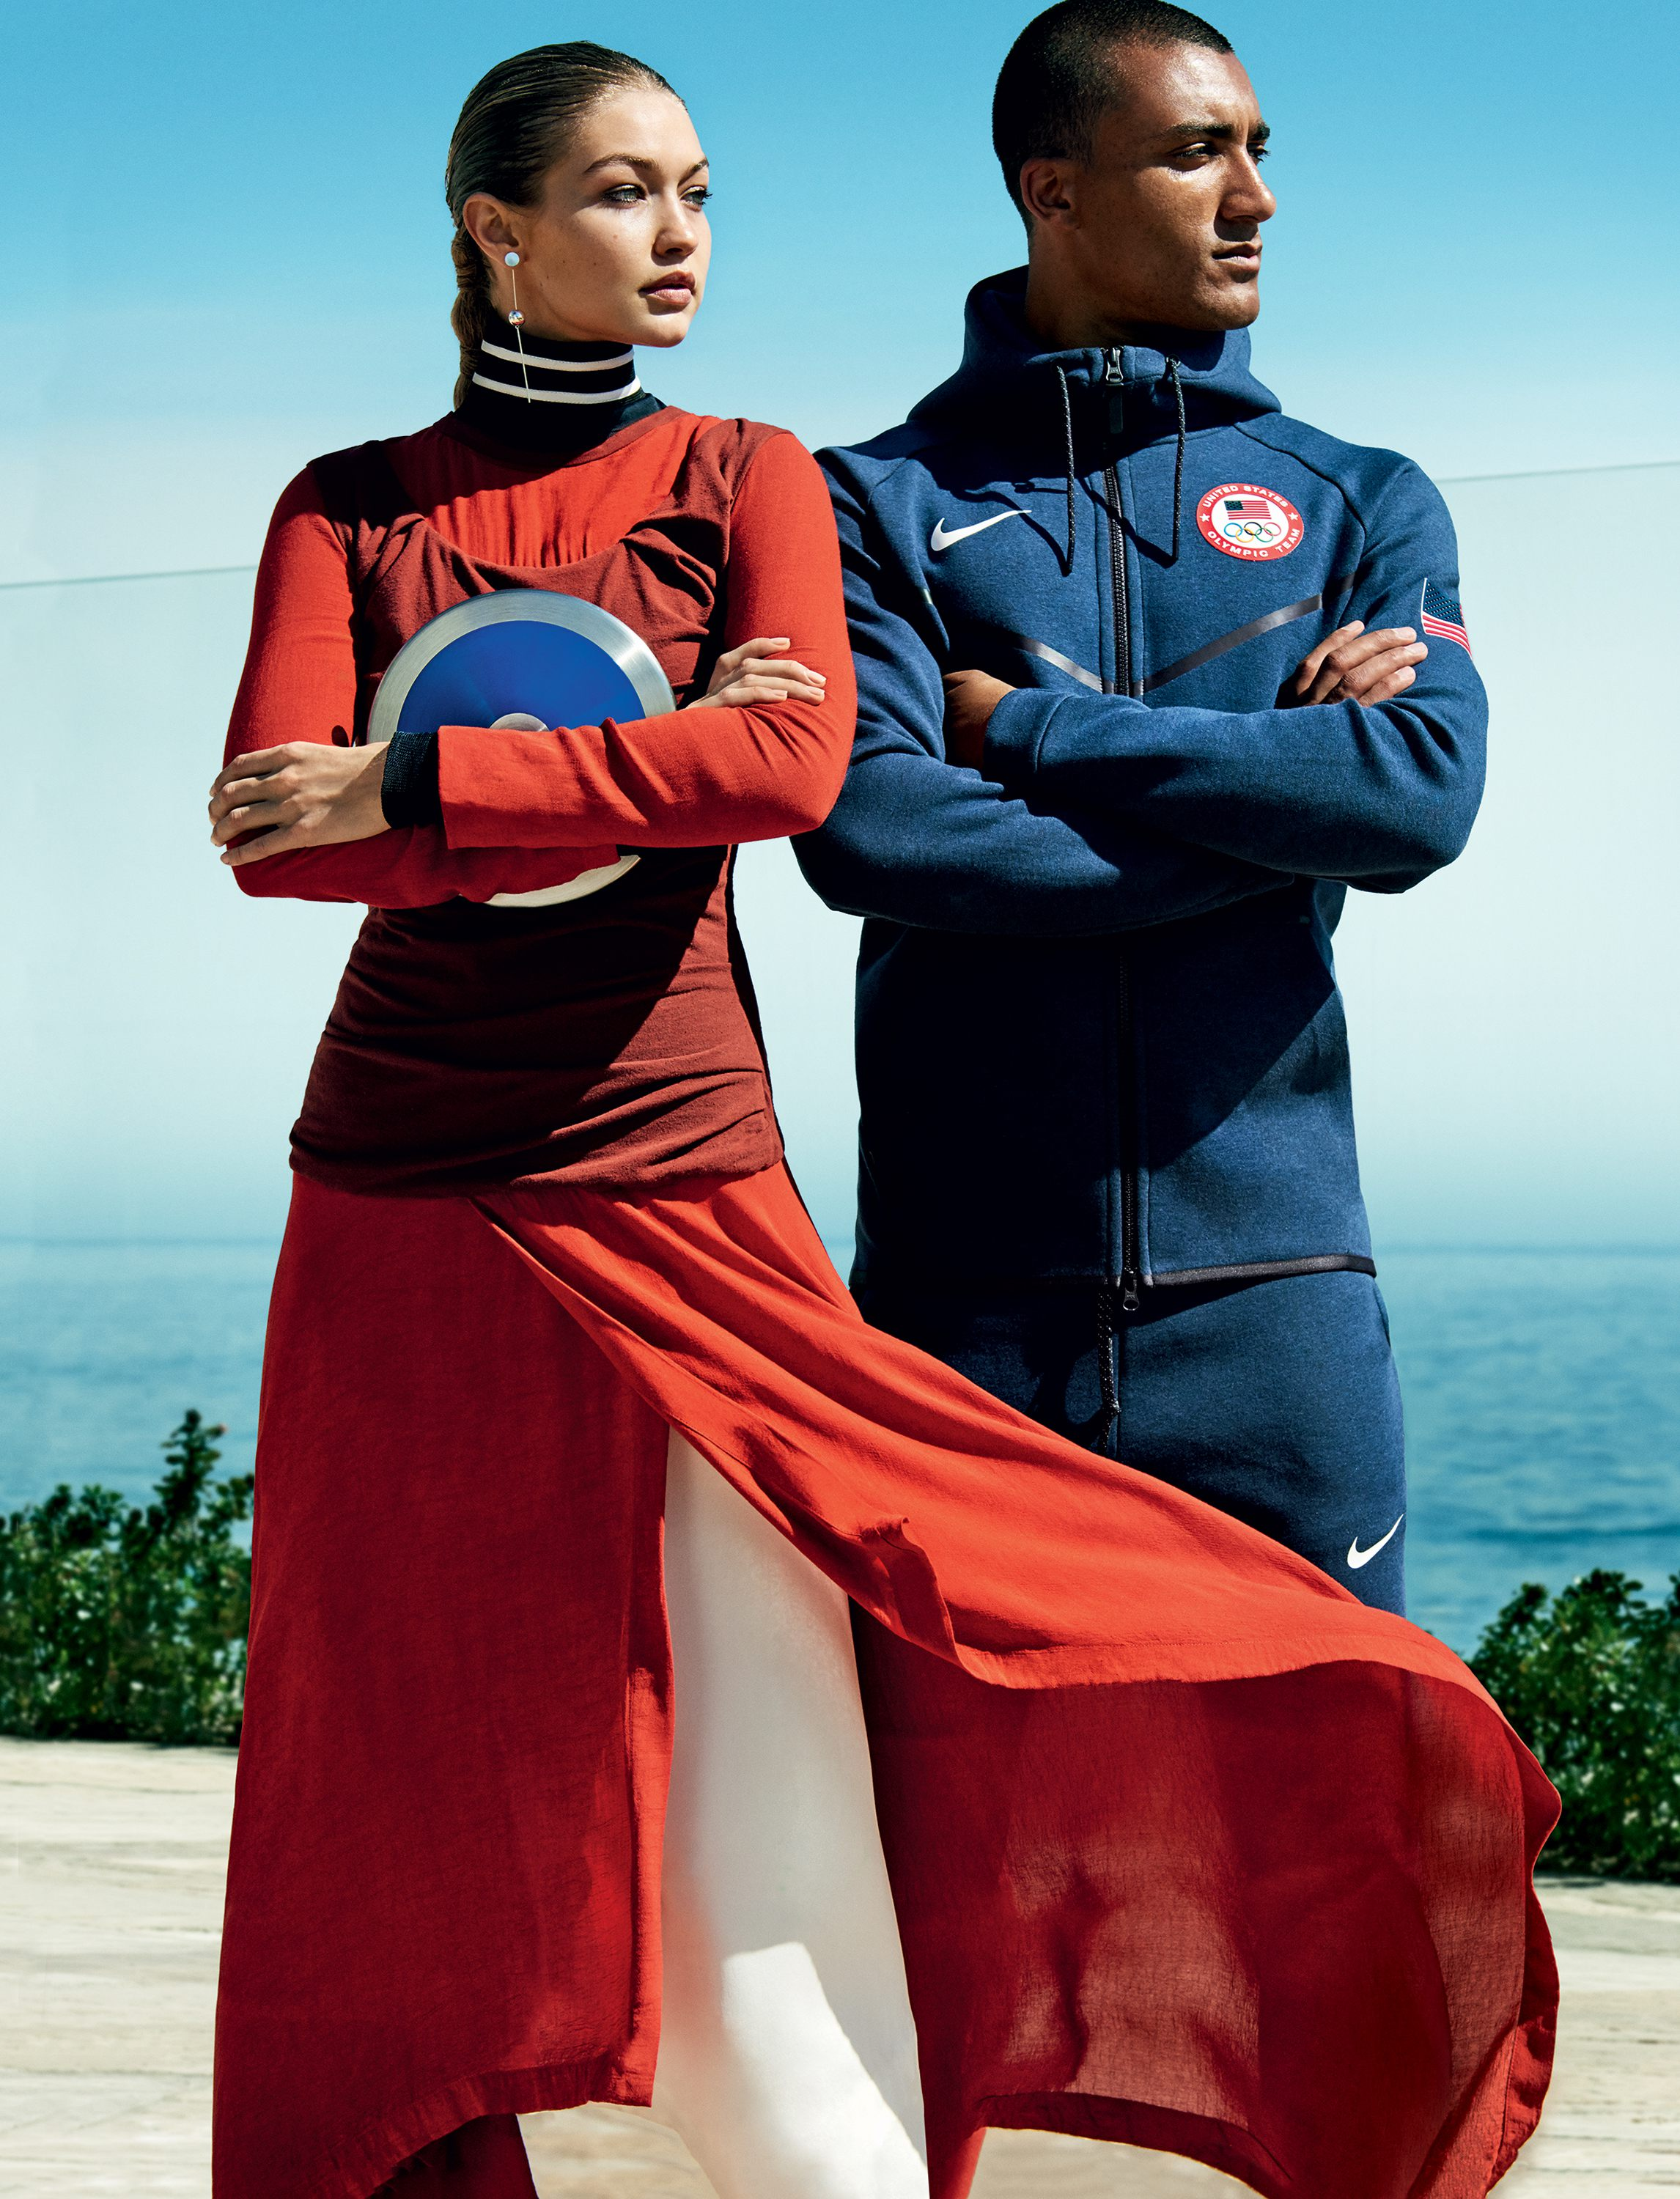 Vogue-US-August-2016-Gigi-Hadid-Ashton-Eaton-by-Mario-Testino-07